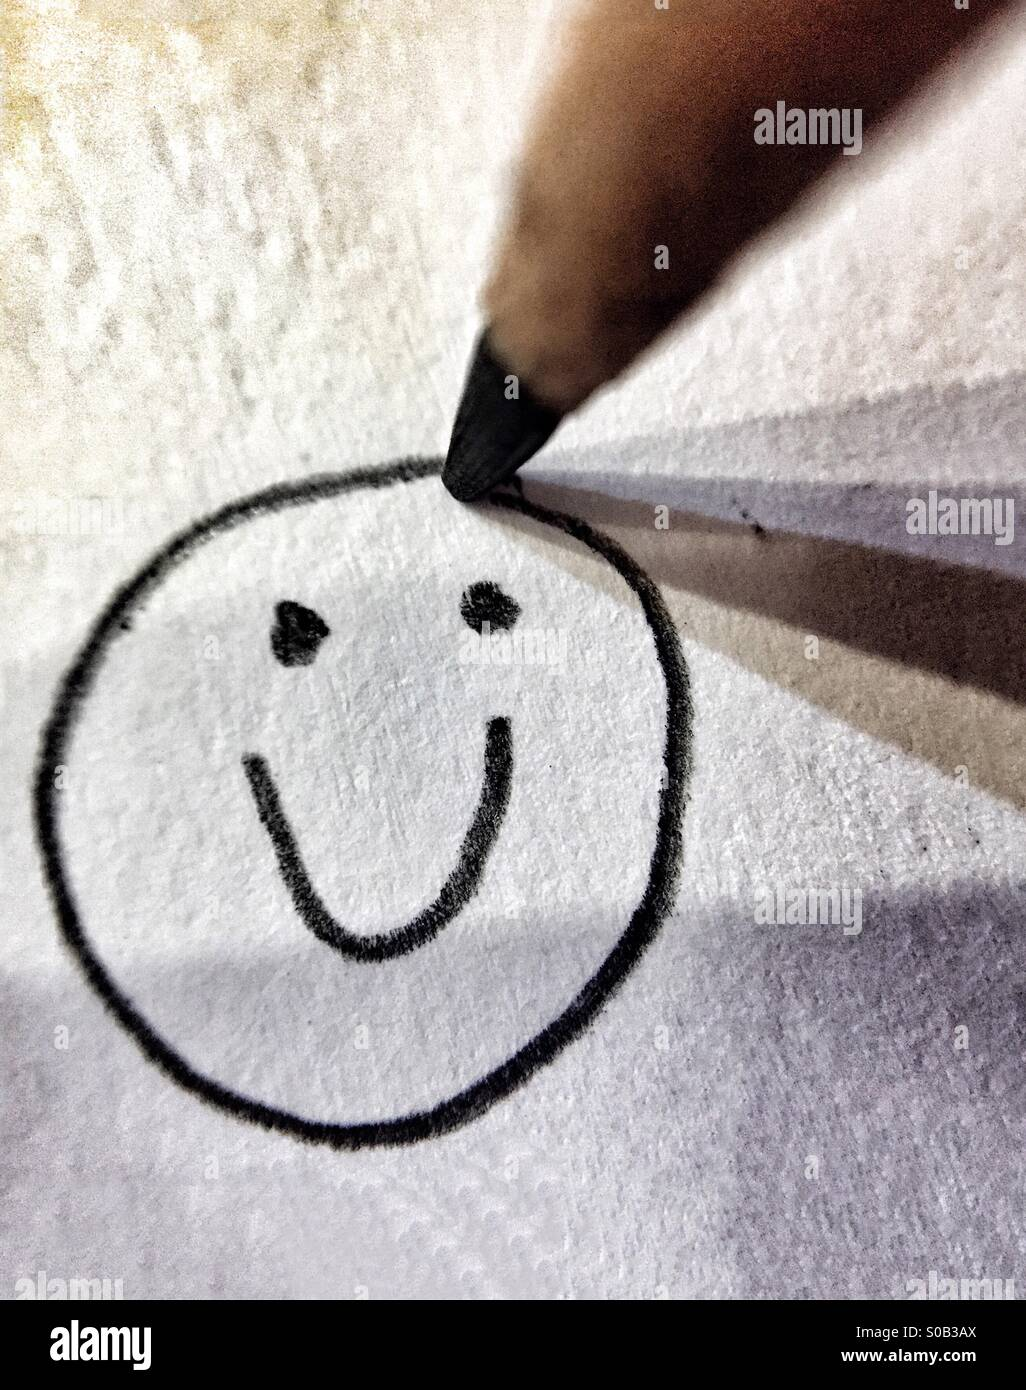 Pencil Drawing Of A Happy, Smiling Face - Stock Image